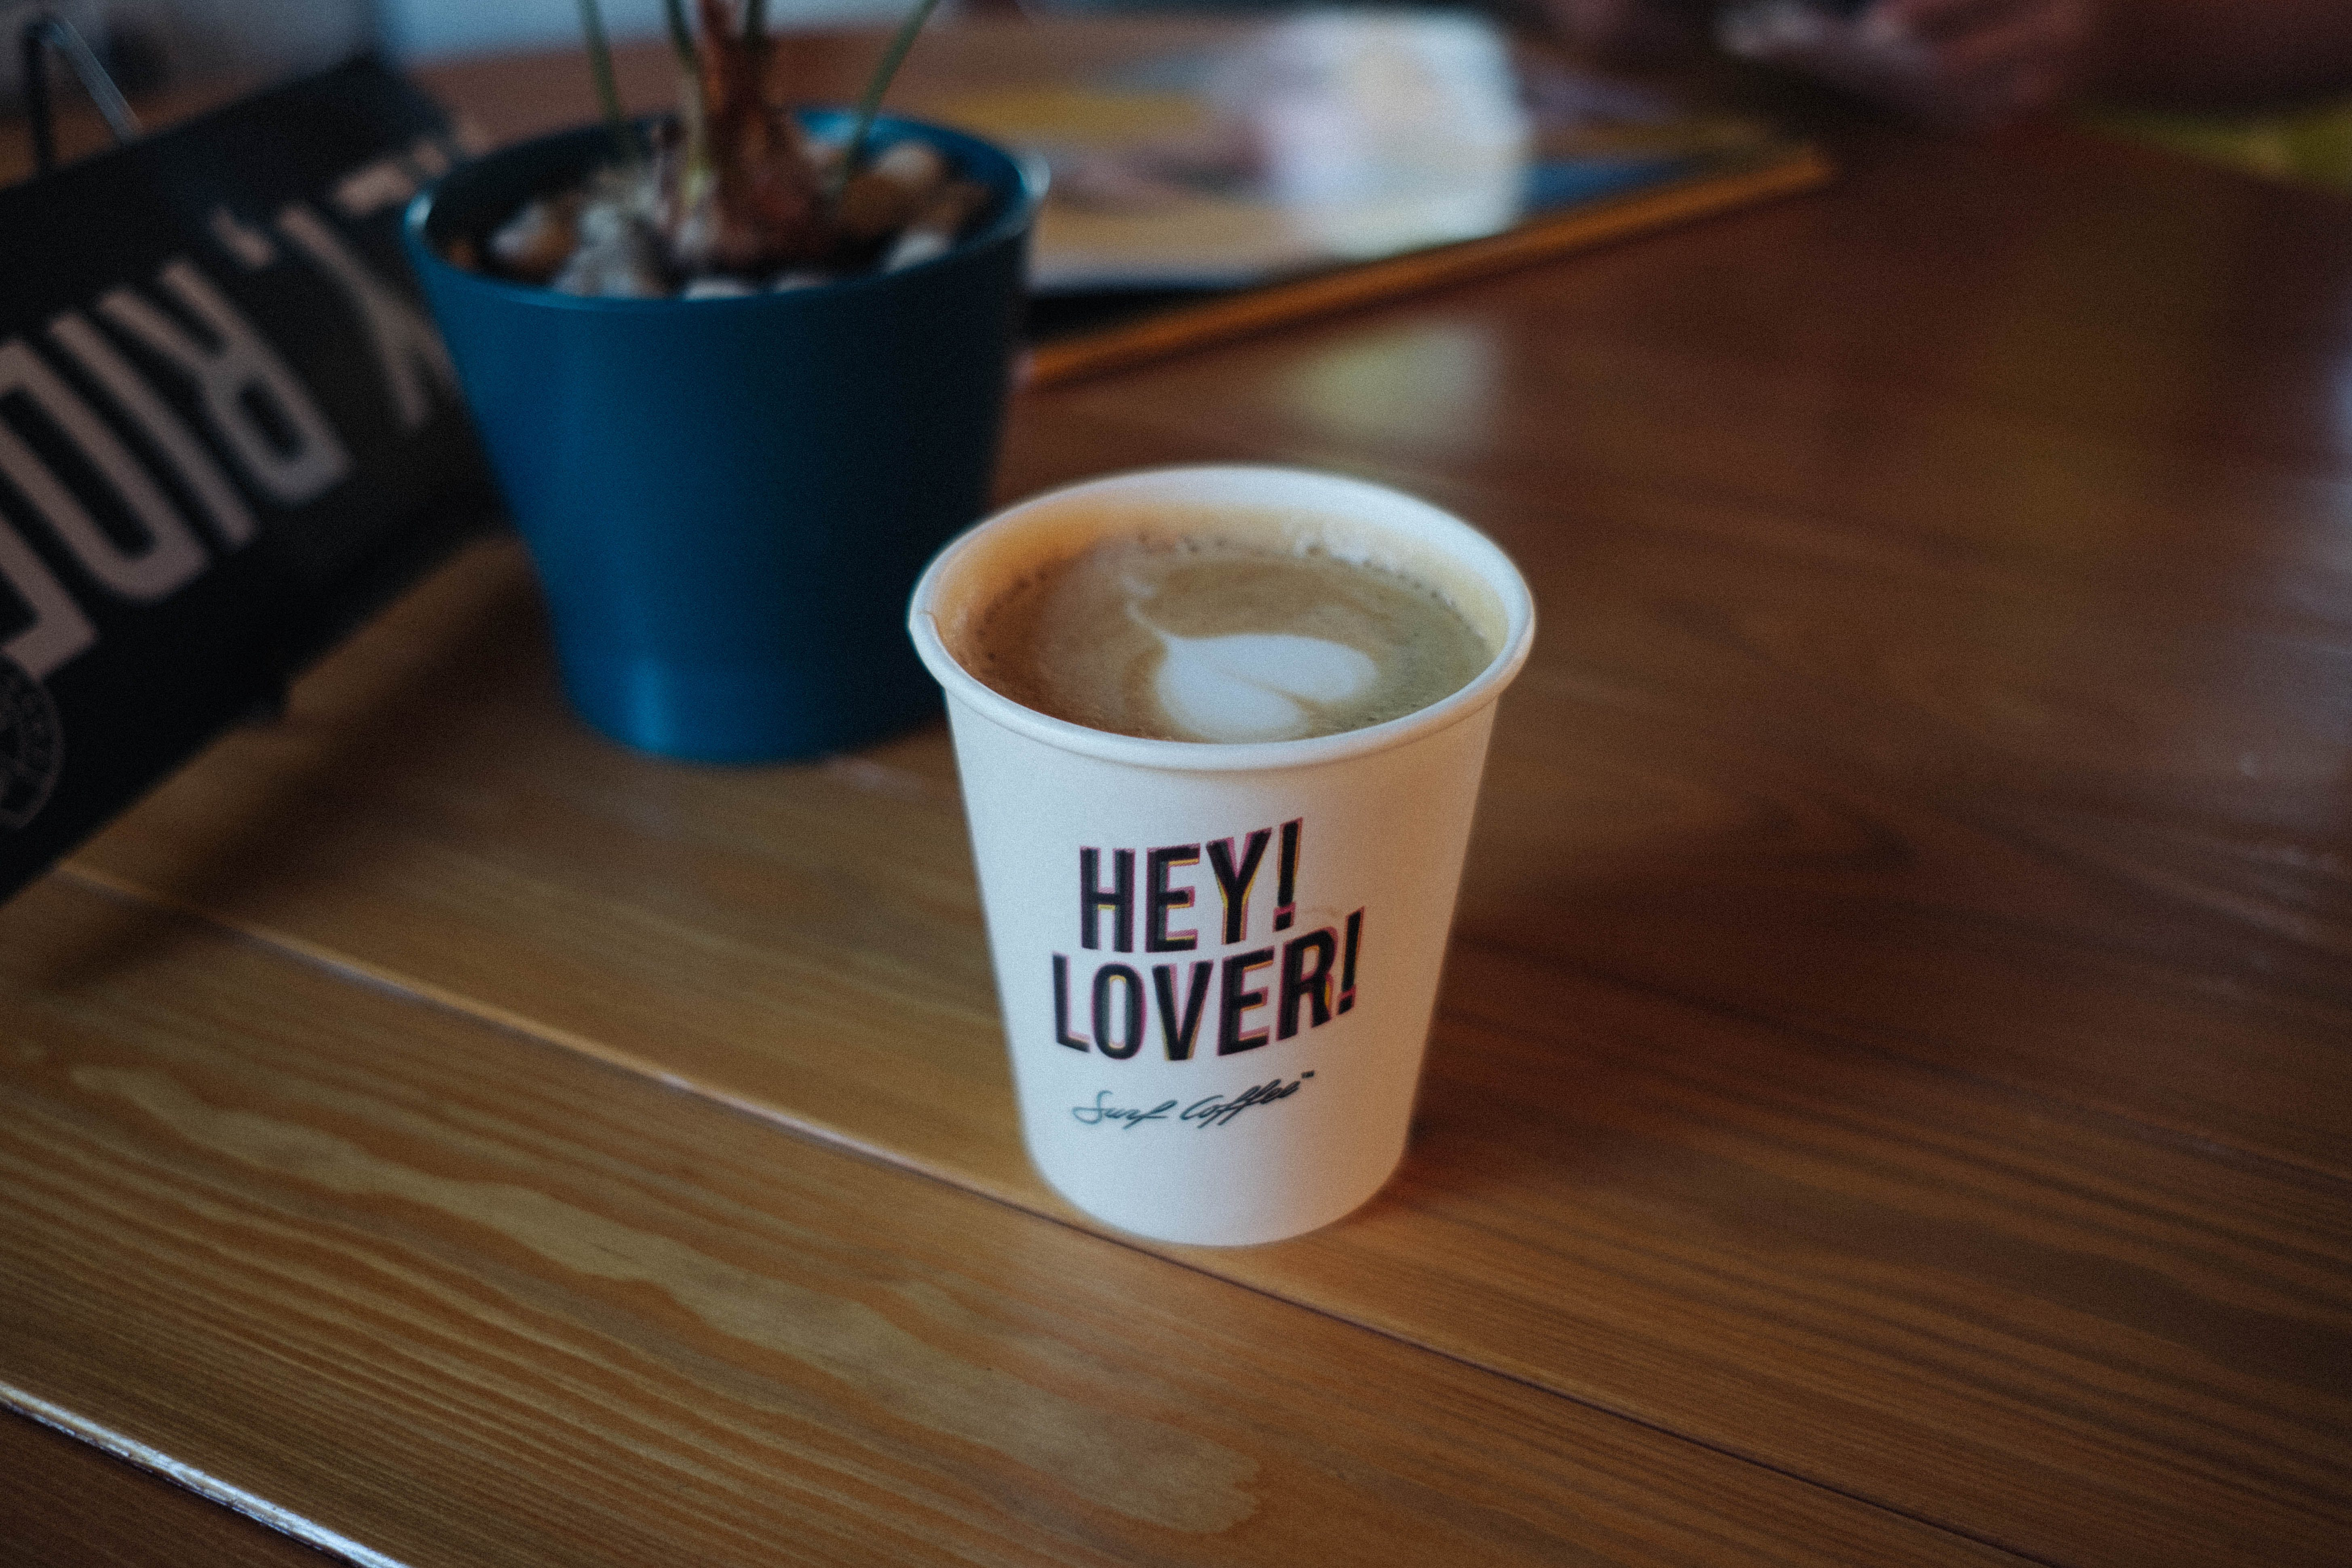 Disposable Cup With Latte and Hey! Lover! Printed Text